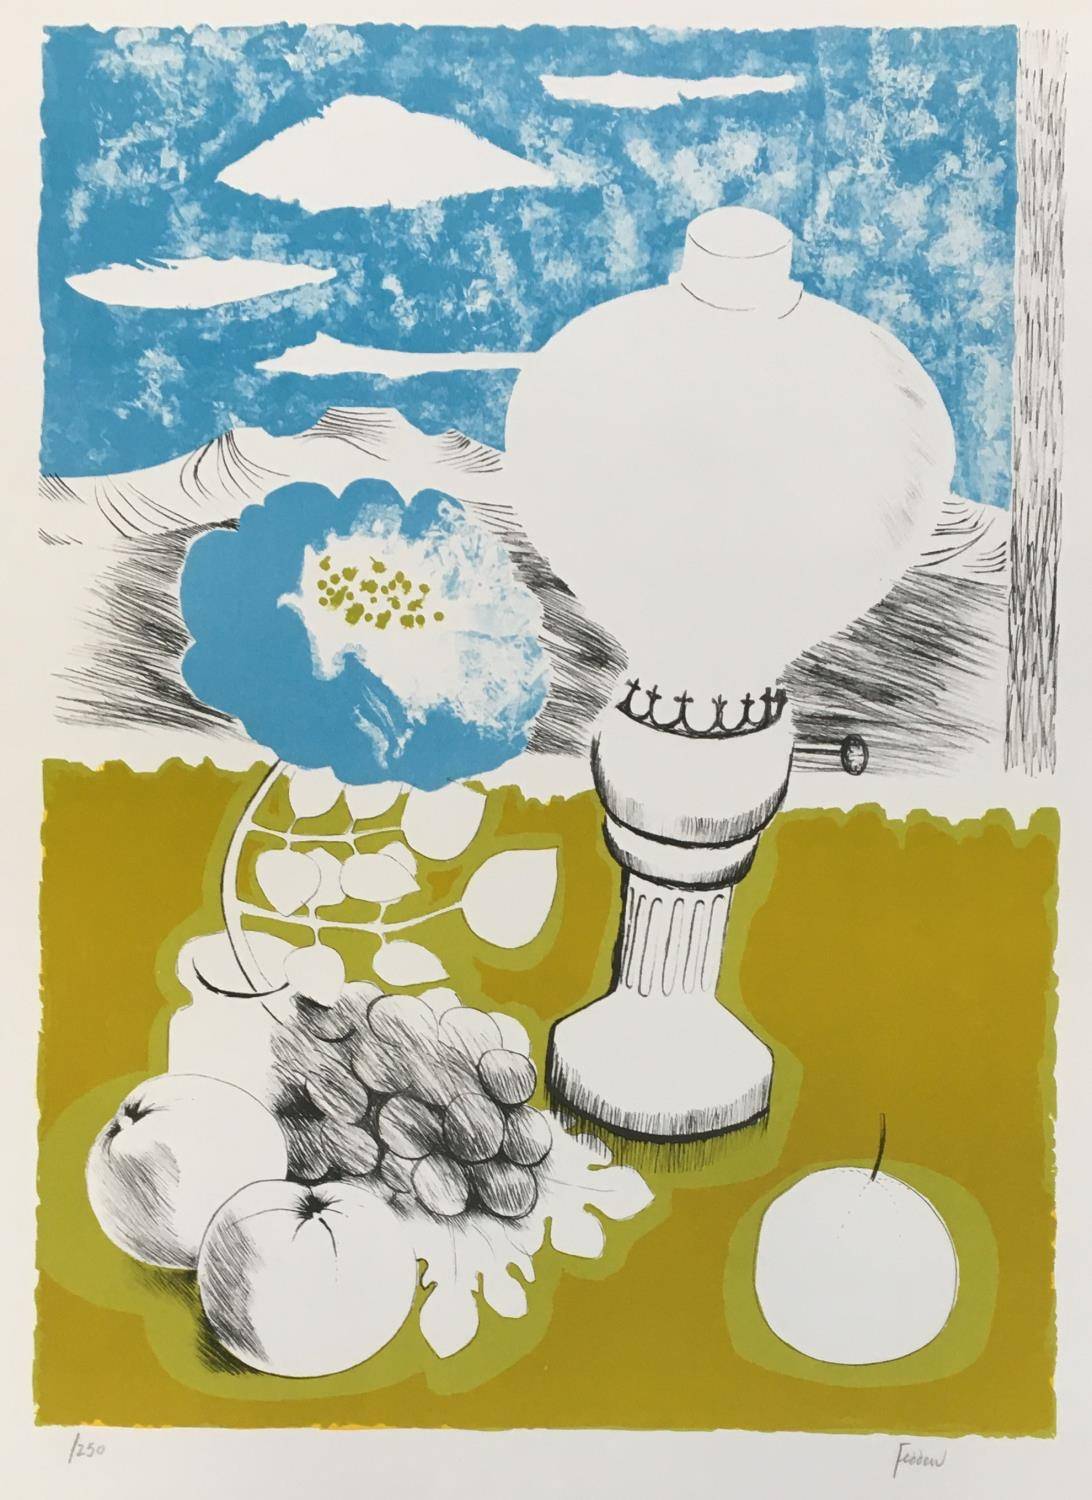 Mary Fedden LG RA, British 1915-2012- 'The Lamp'; lithograph printed in colours, signed and numbered - Image 2 of 2